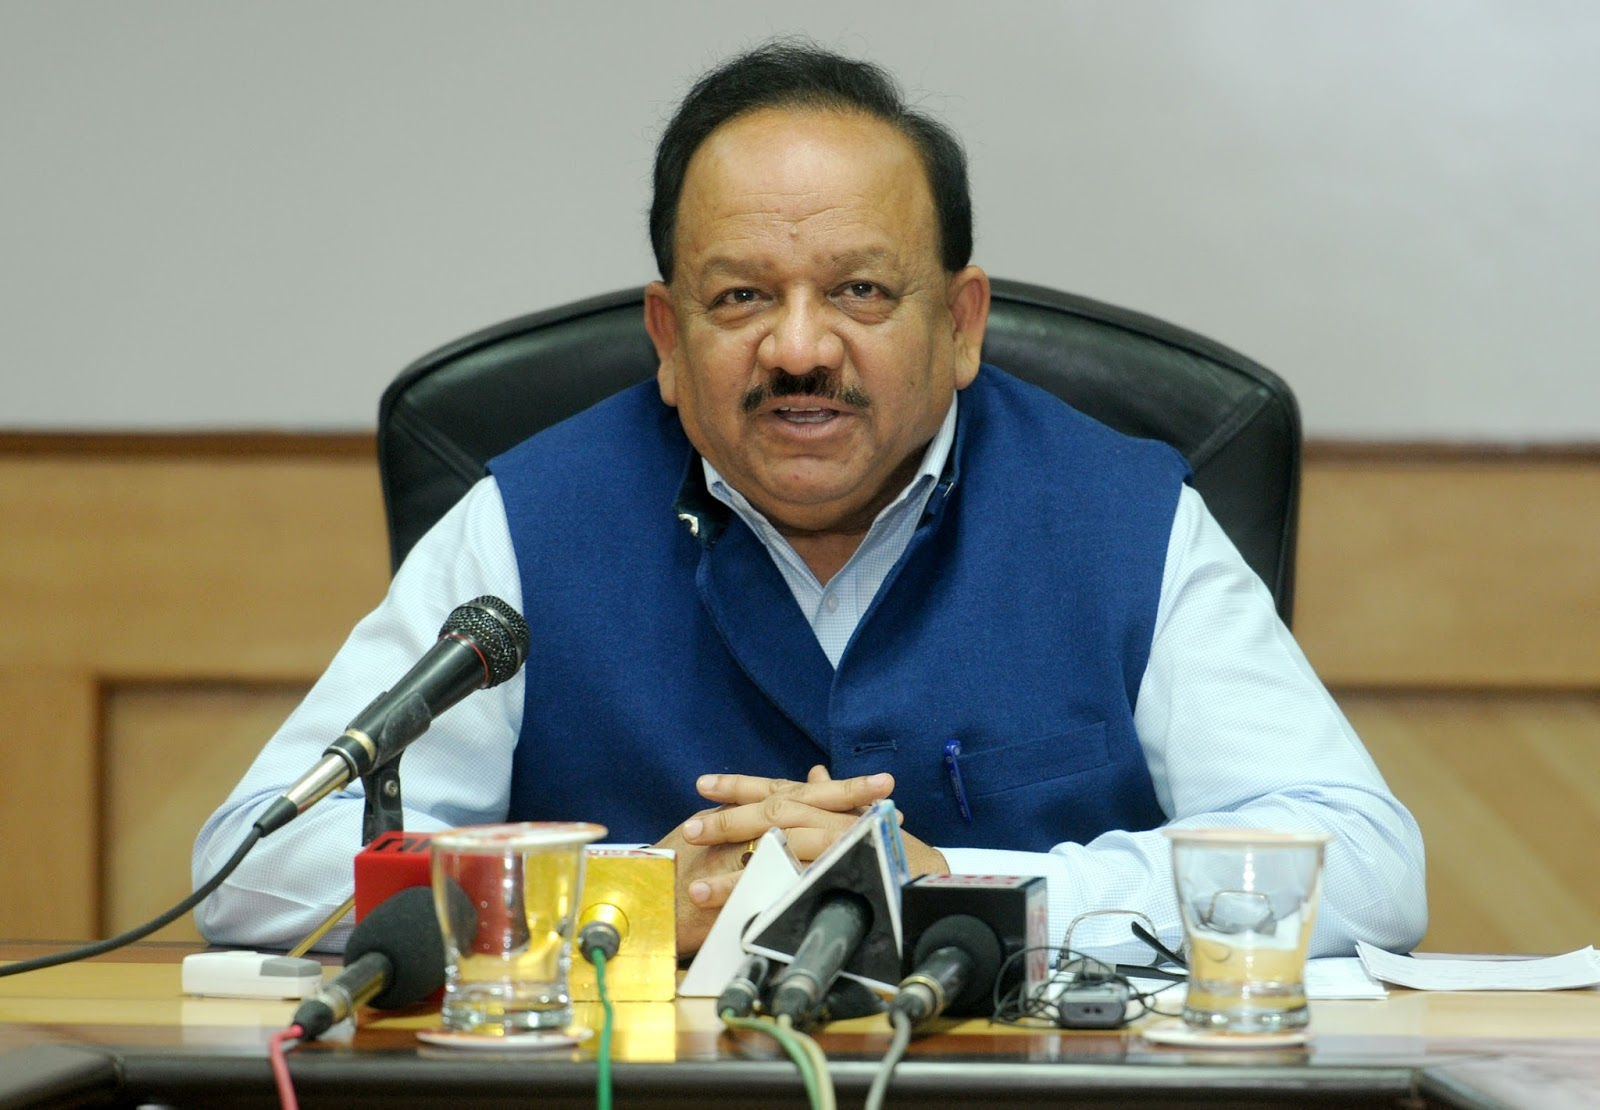 Union Minister for Health and Family Welfare Harsh Vardhan. Photo courtesy: PIB